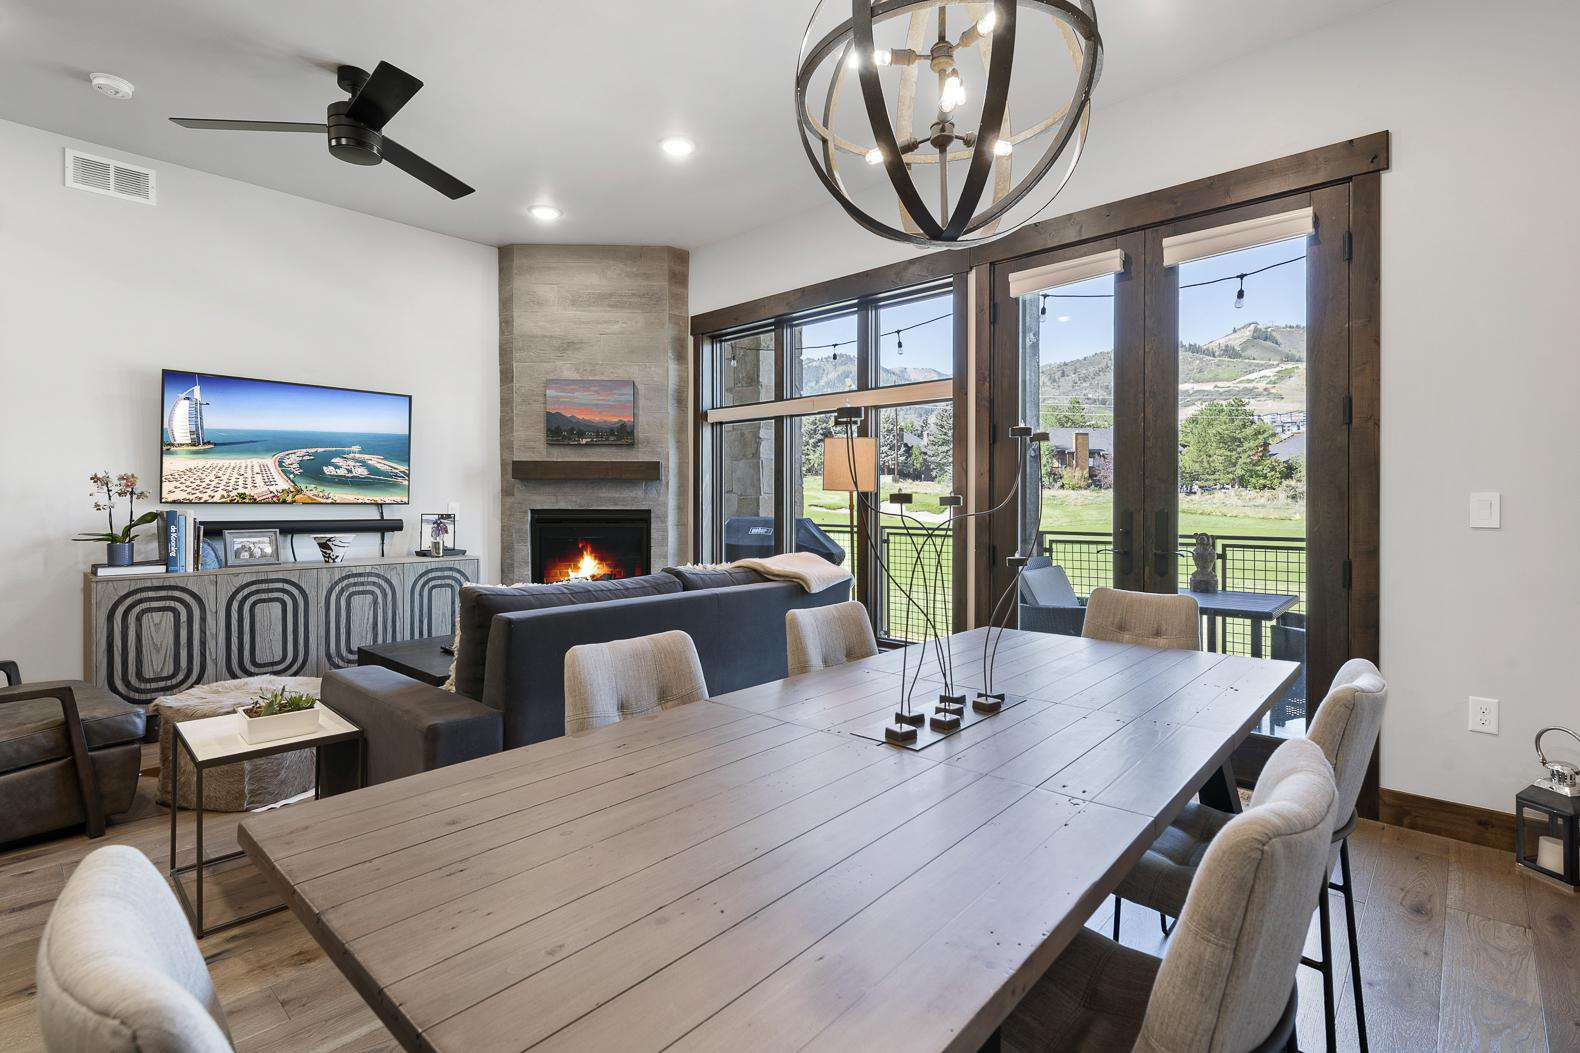 Living Room Dining Table & Balcony